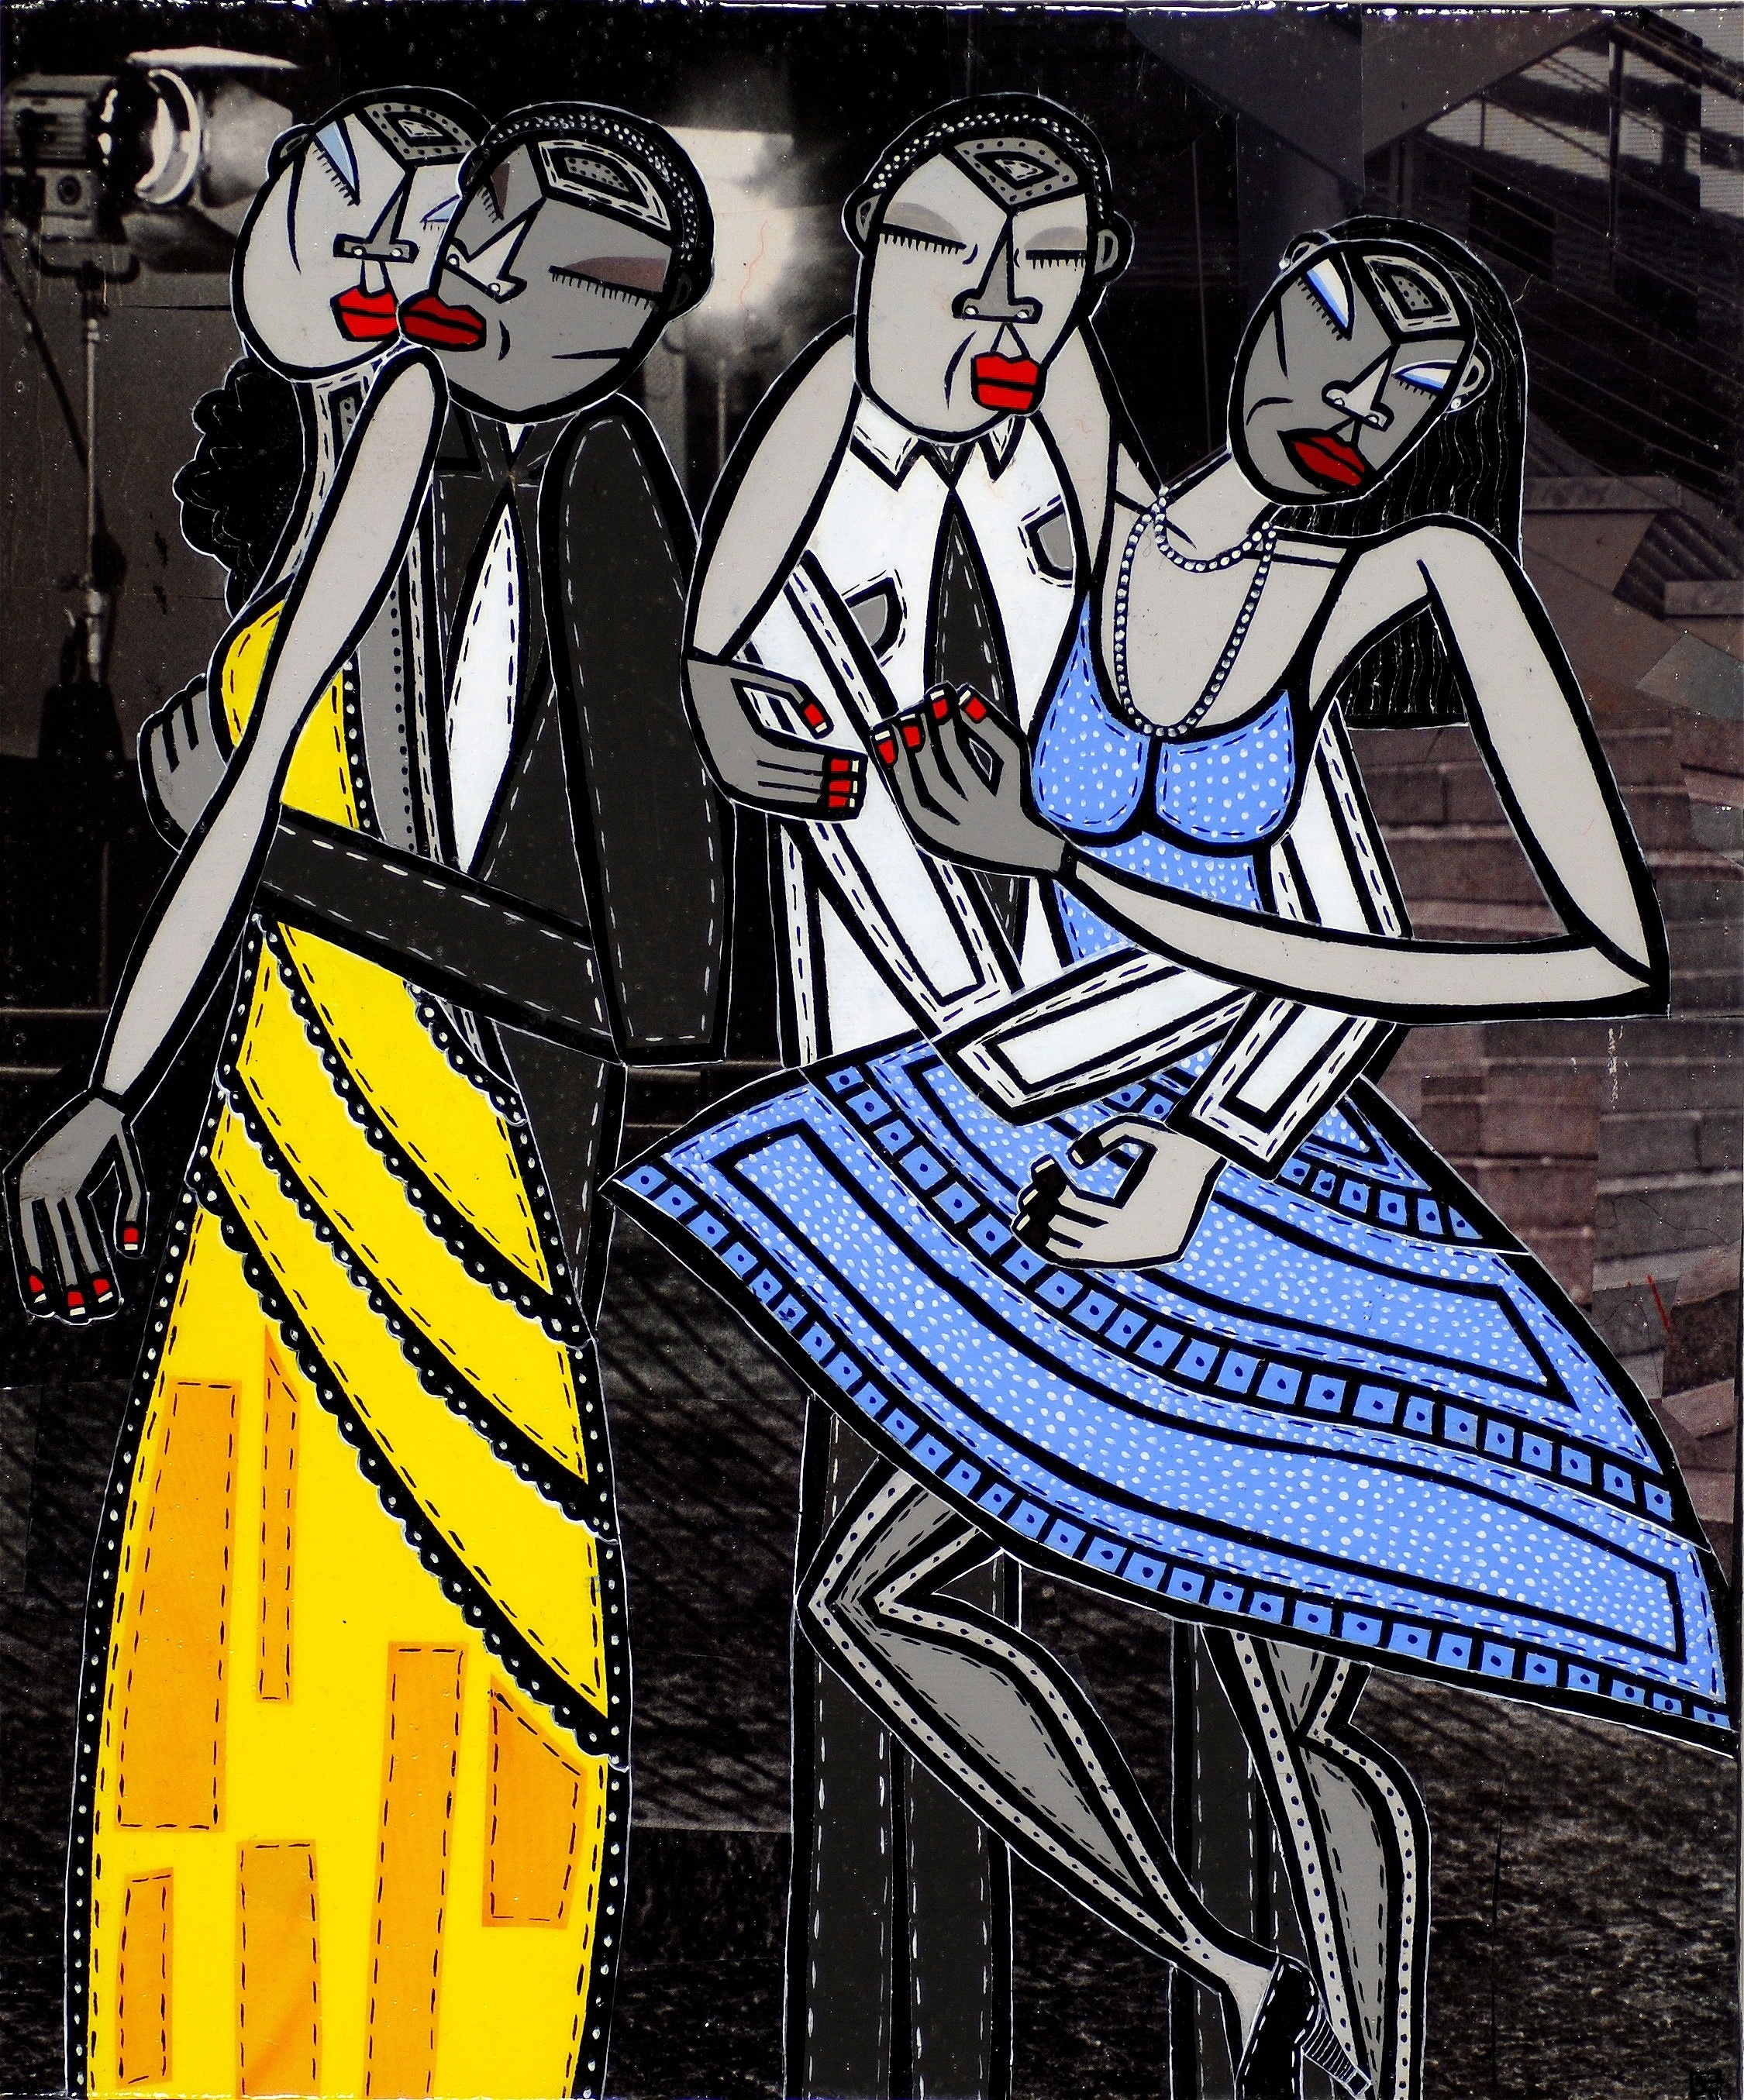 """Dancing Queens, acrylic and paper collage on canvas, 12""""x 10"""", 2007, private collection"""